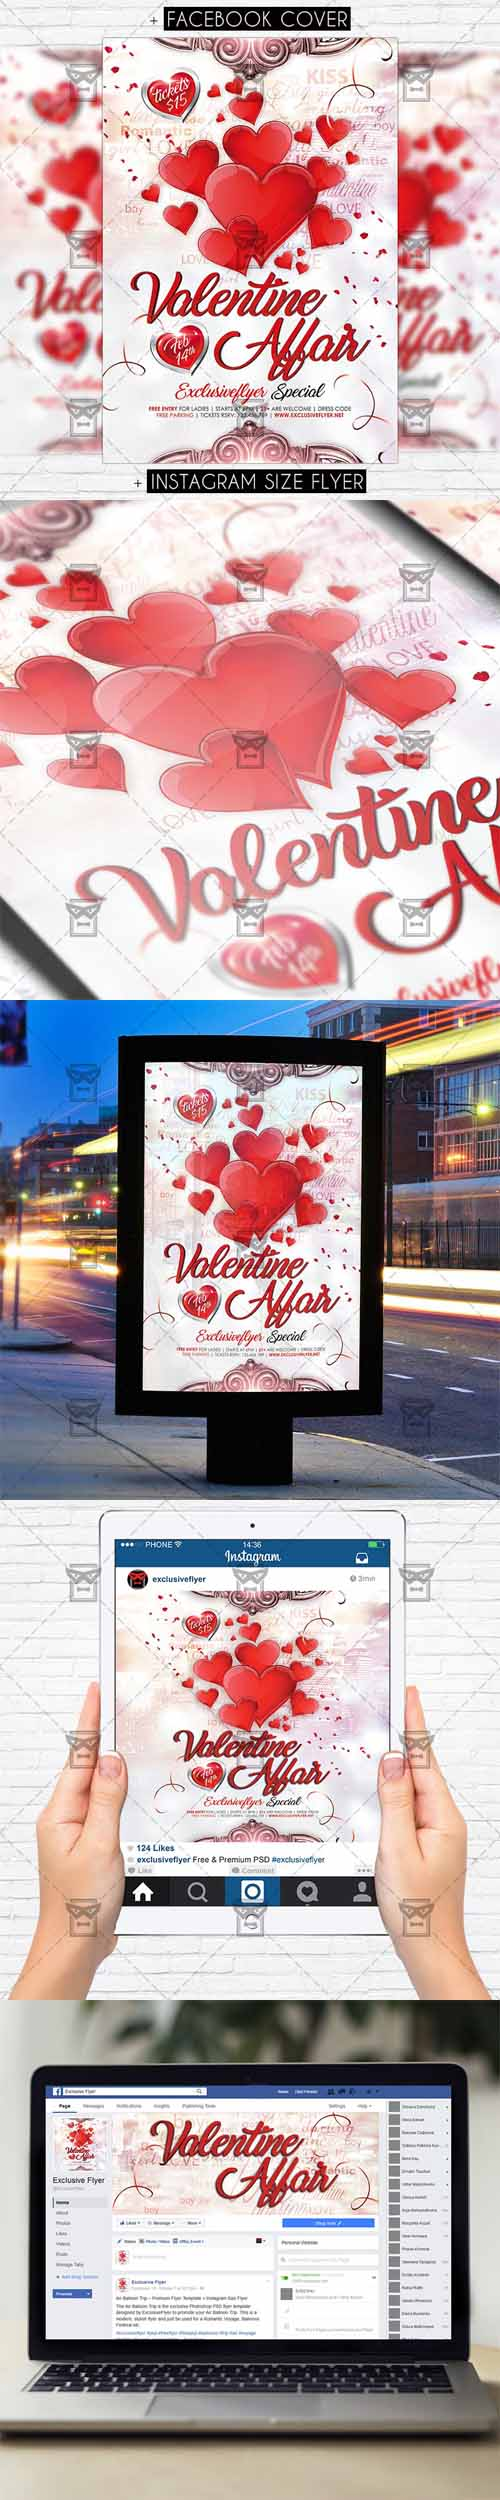 Flyer Template - Valentine Affair